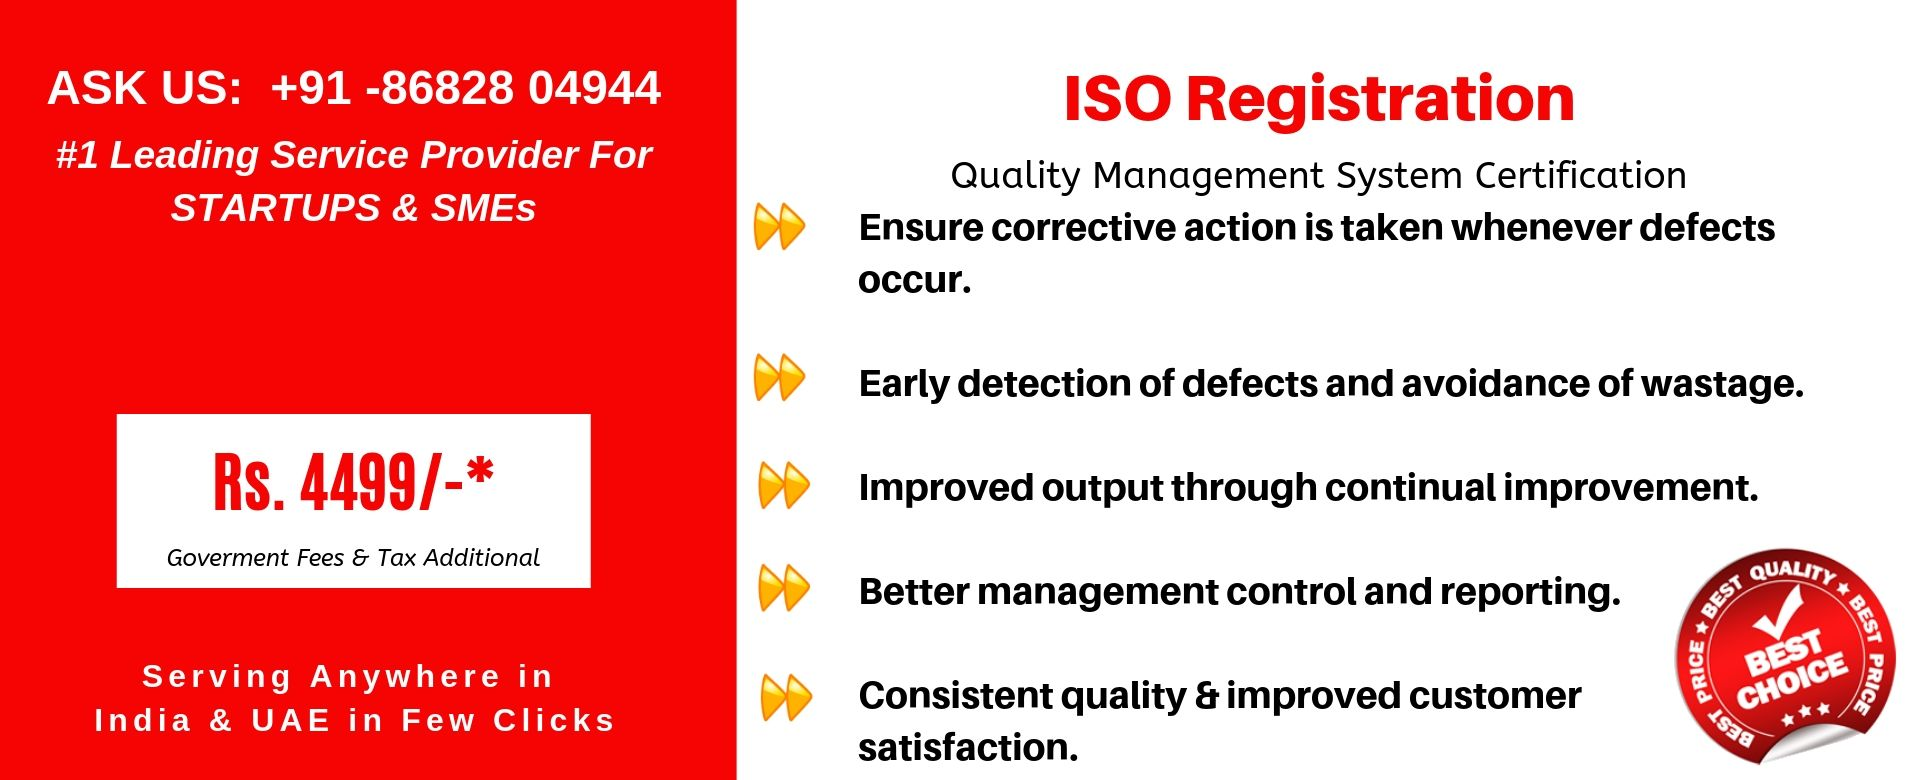 iso registration in india